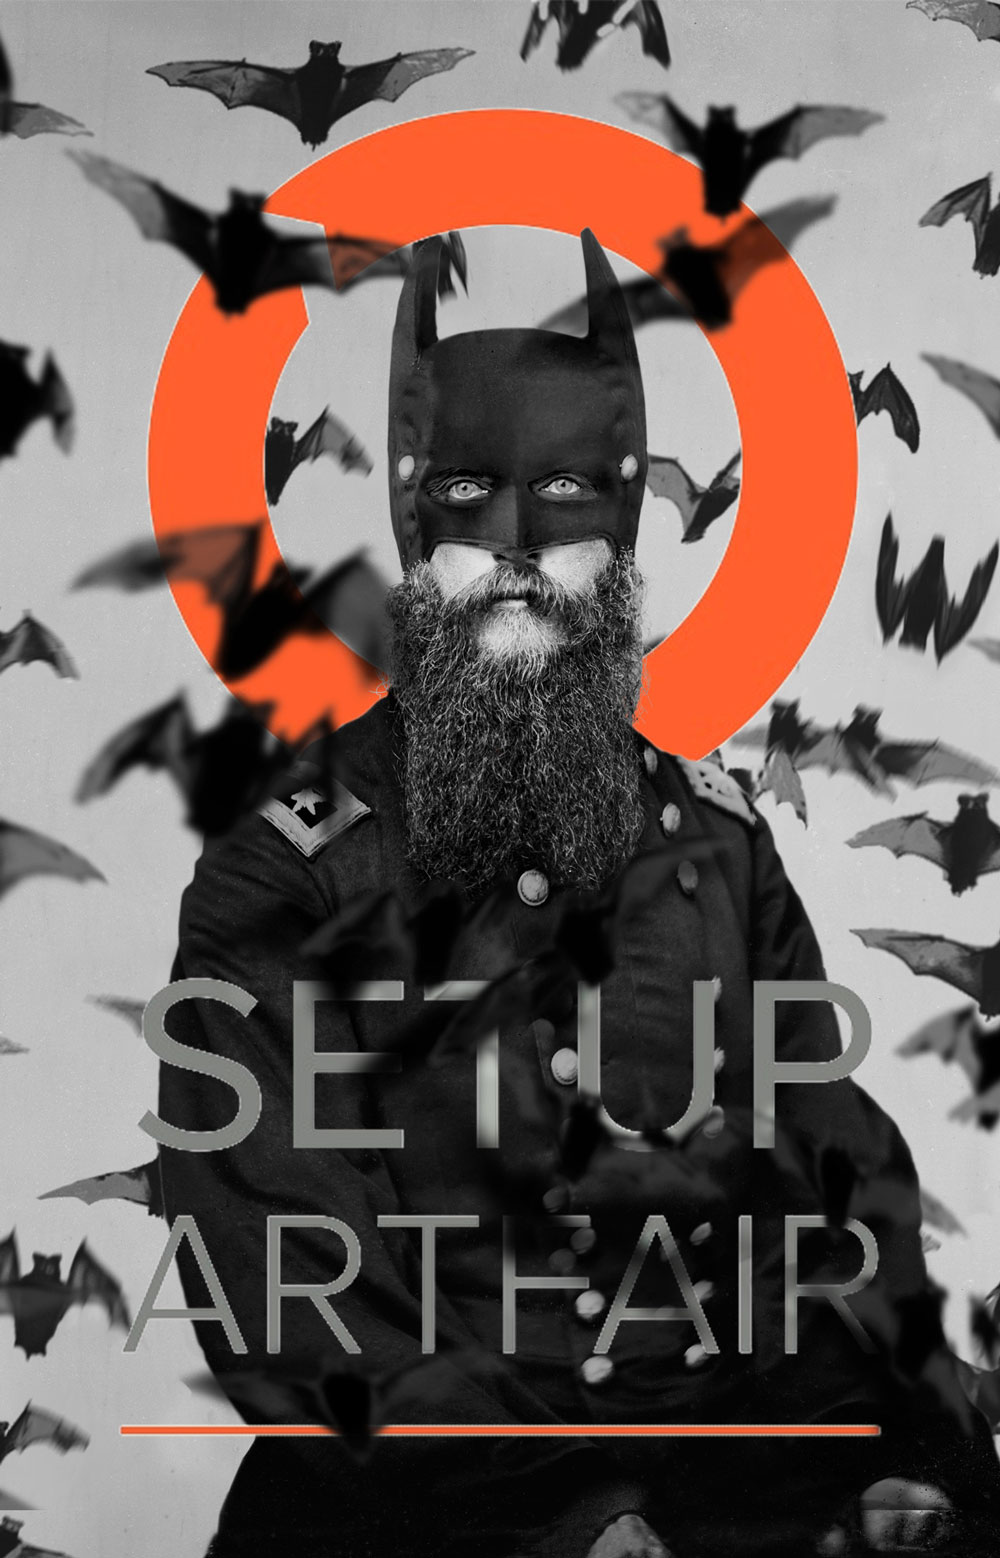 SETUP art fair 2016